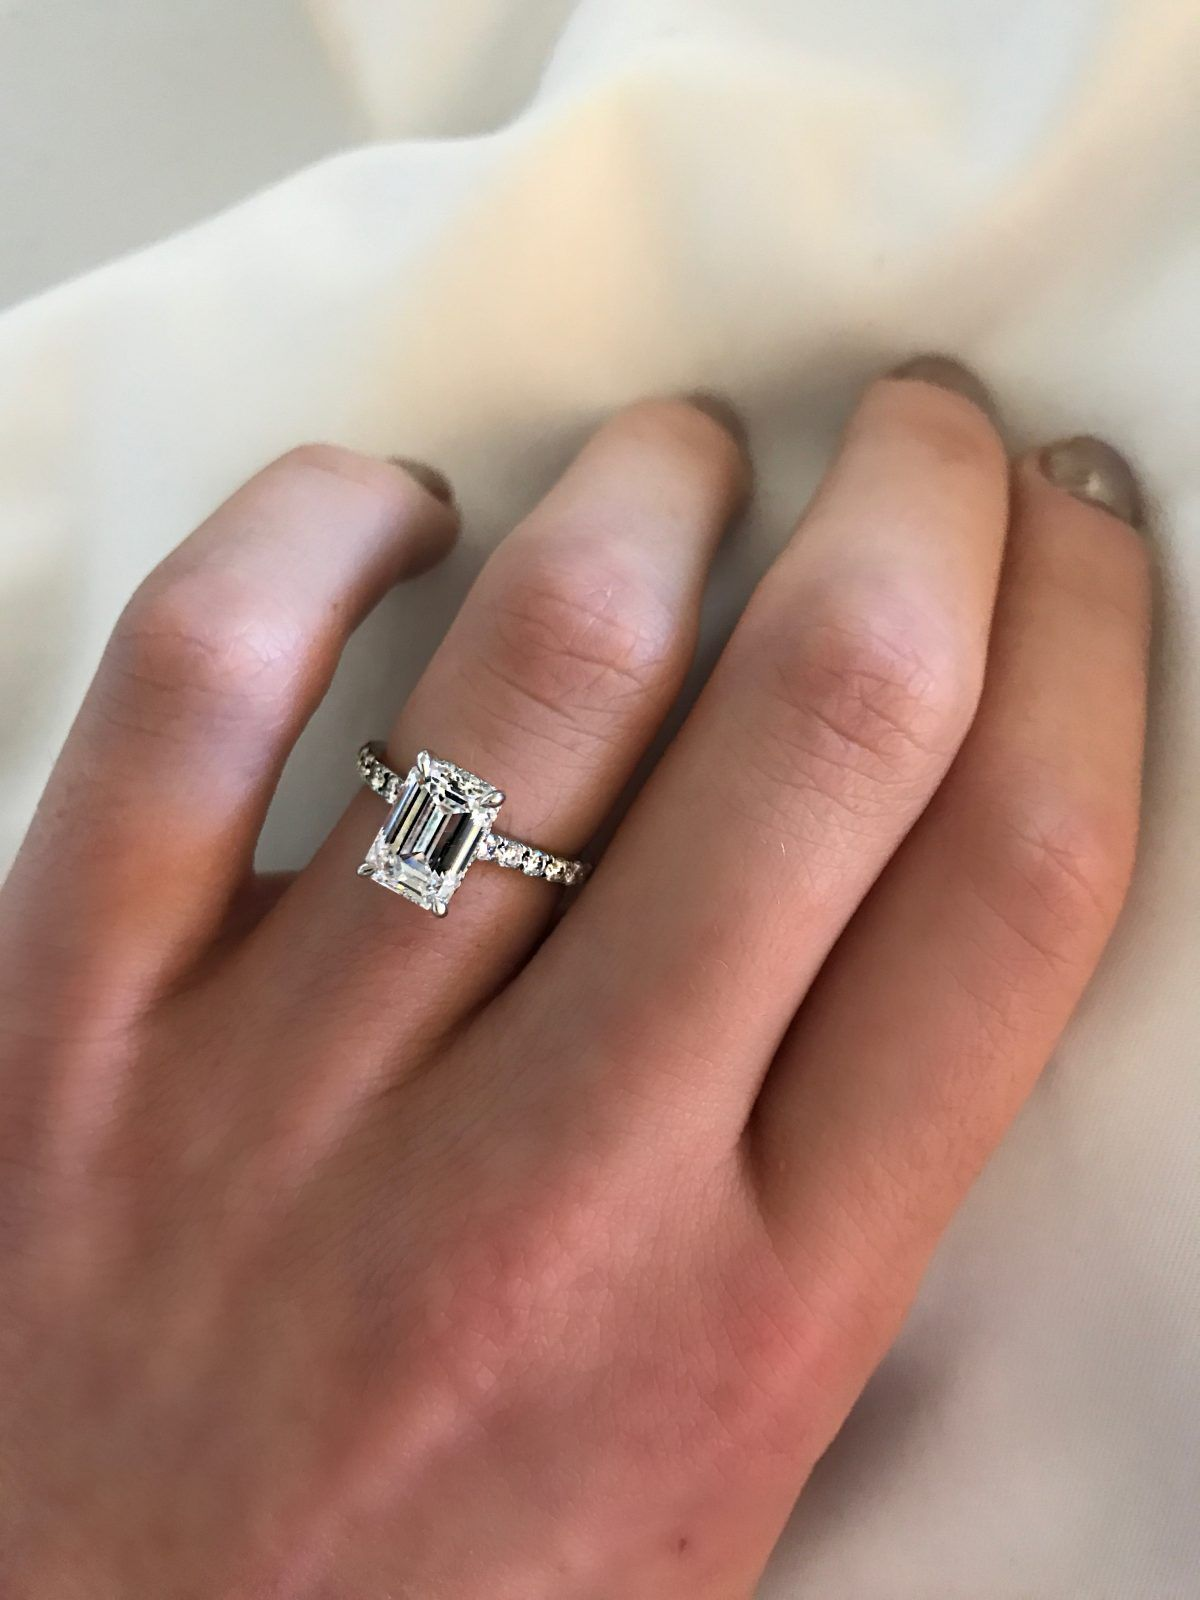 rings ring tumblr classy elegant engagement emerald beautiful amazing diamond wedding